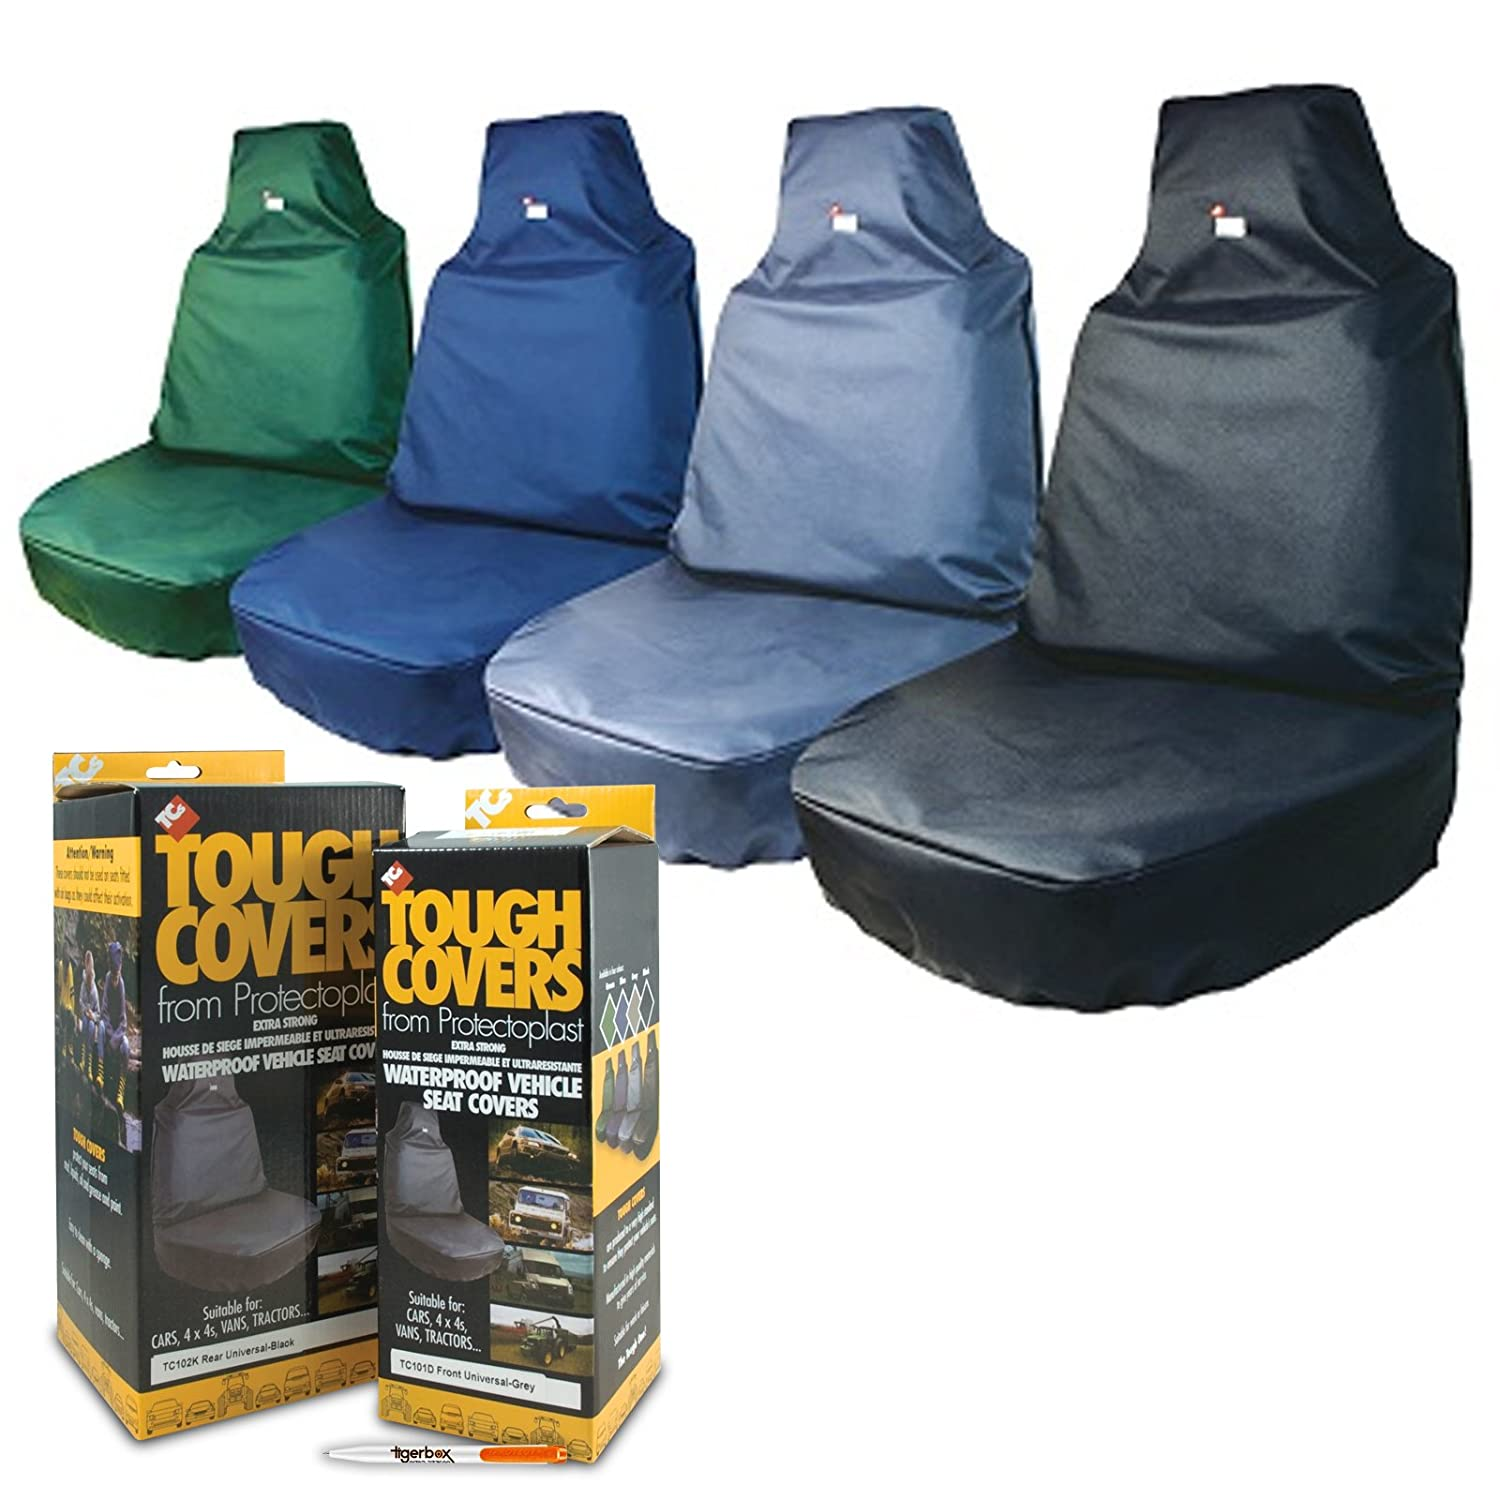 TOUGH COVERS Heavy Duty Black Extra Strong Waterproof Easy Fit Front Seat Cover for your Vehicle AND Tigerbox® Antibacterial Pen.